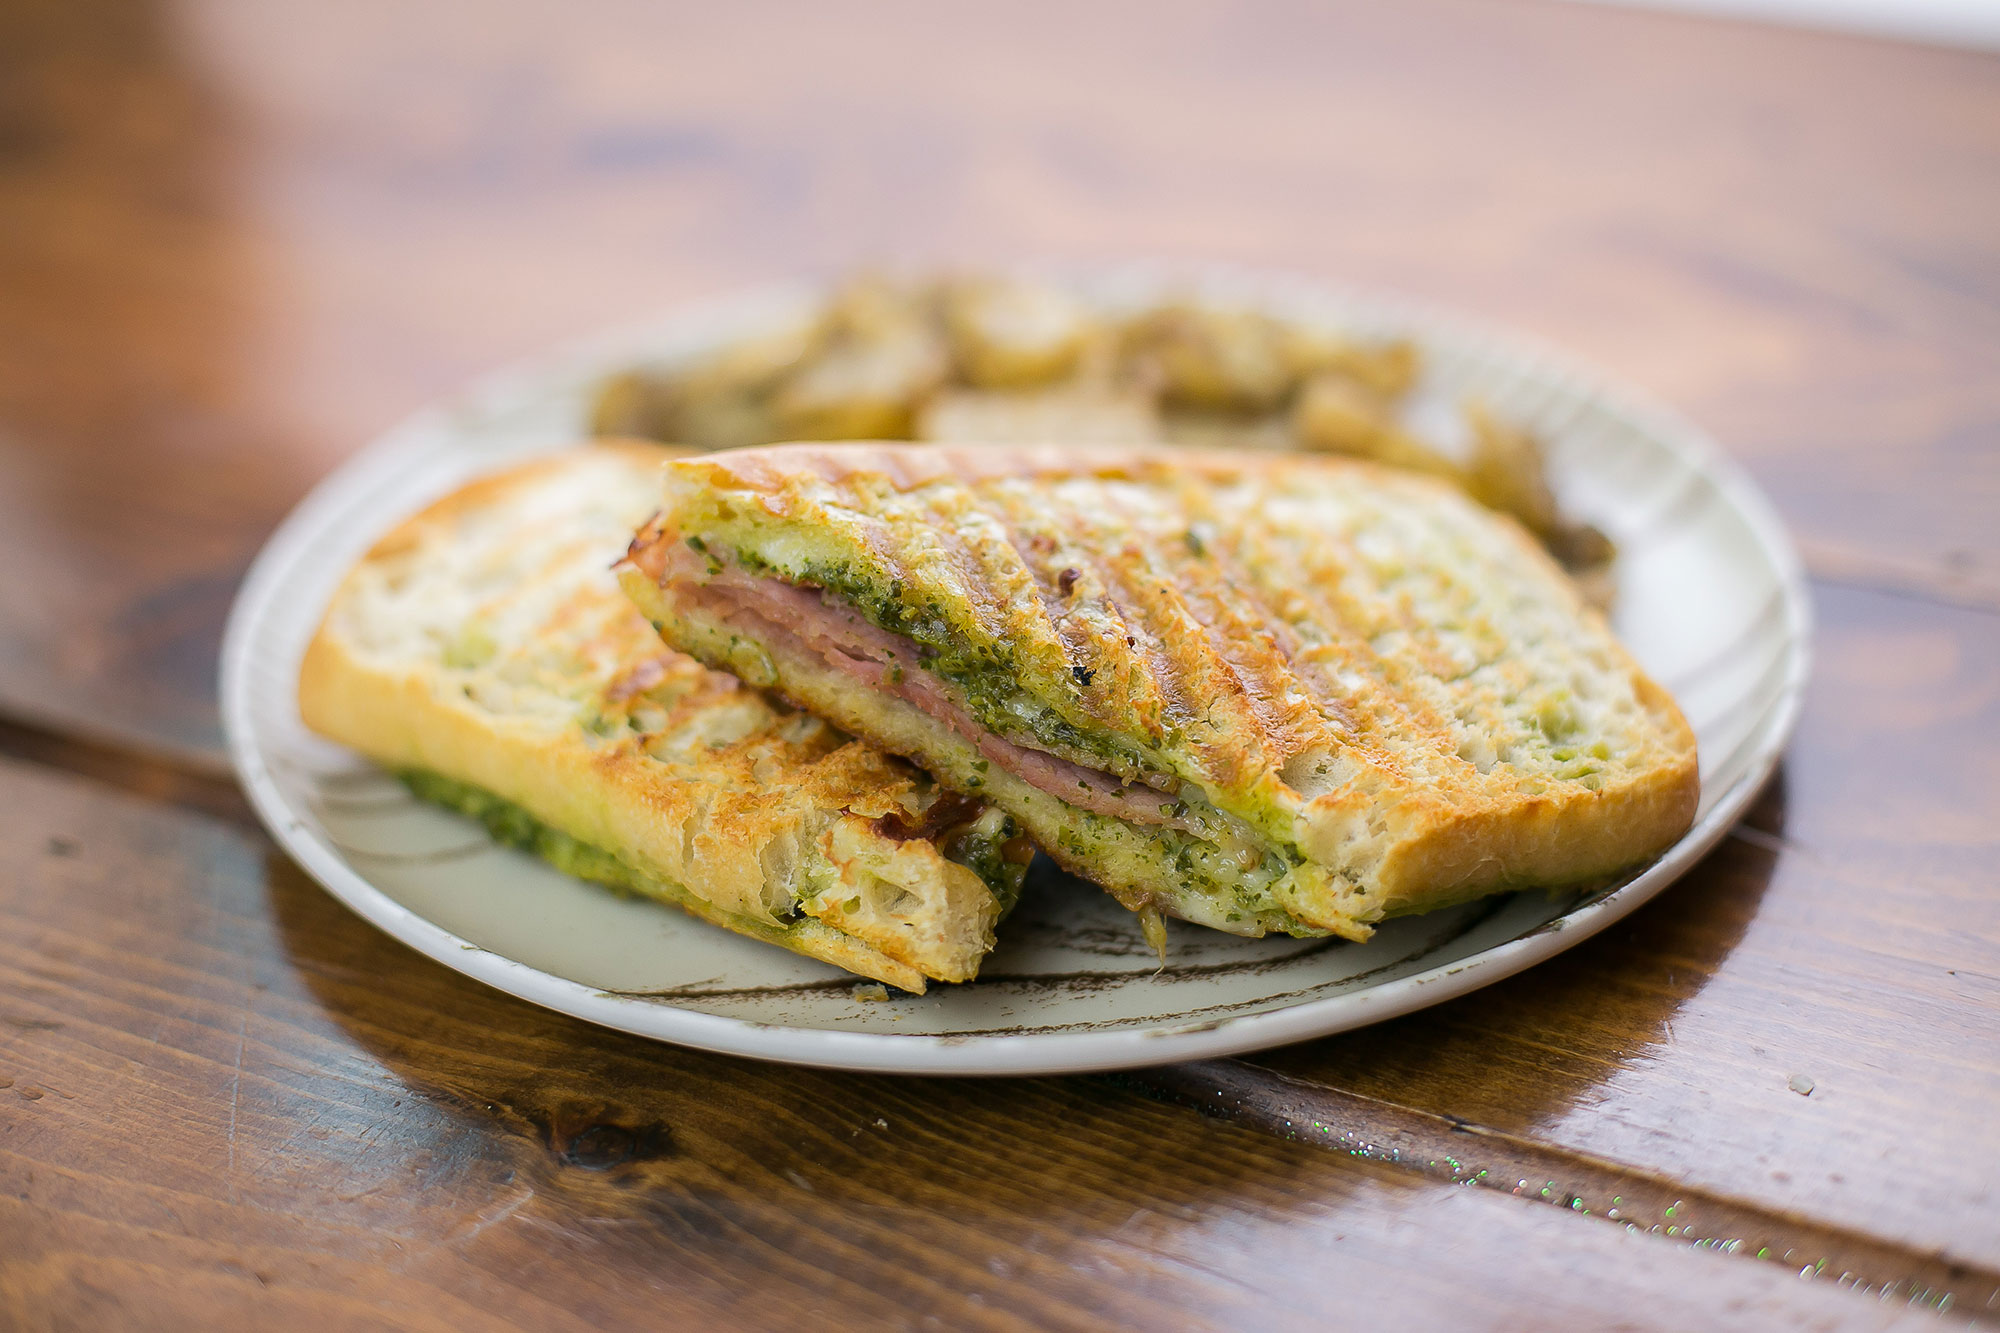 ham, cheese, pesto, sauce